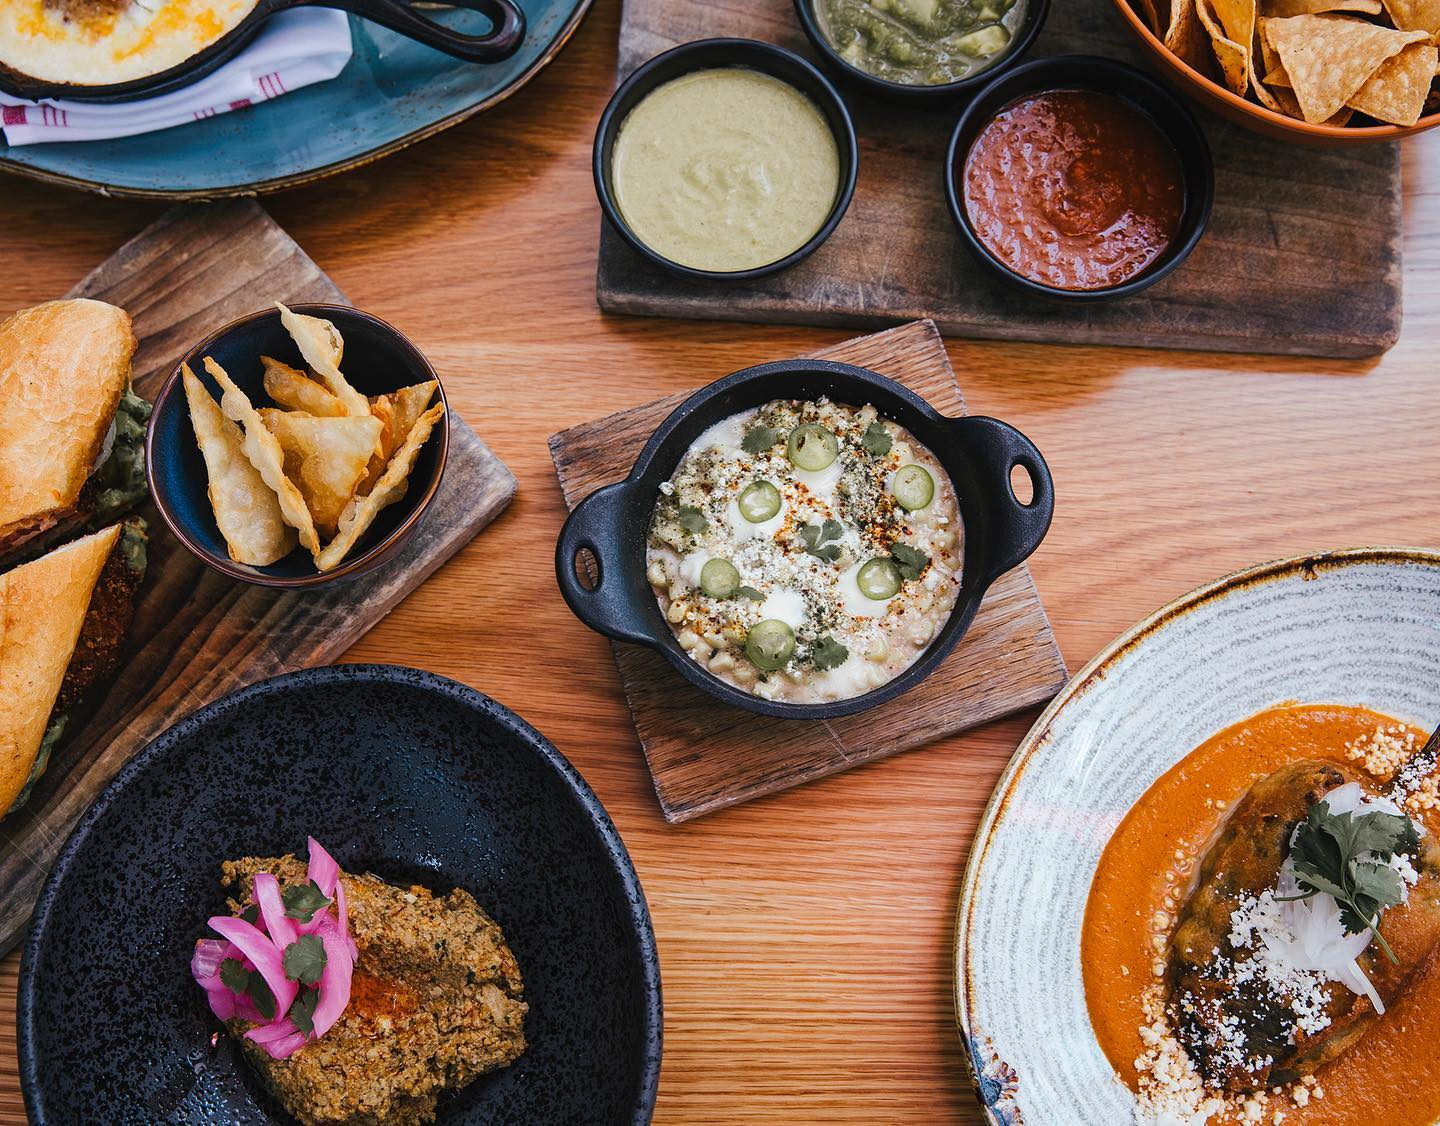 Esquites, chile relleno, sikil pak, and other Mexican dishes on a table